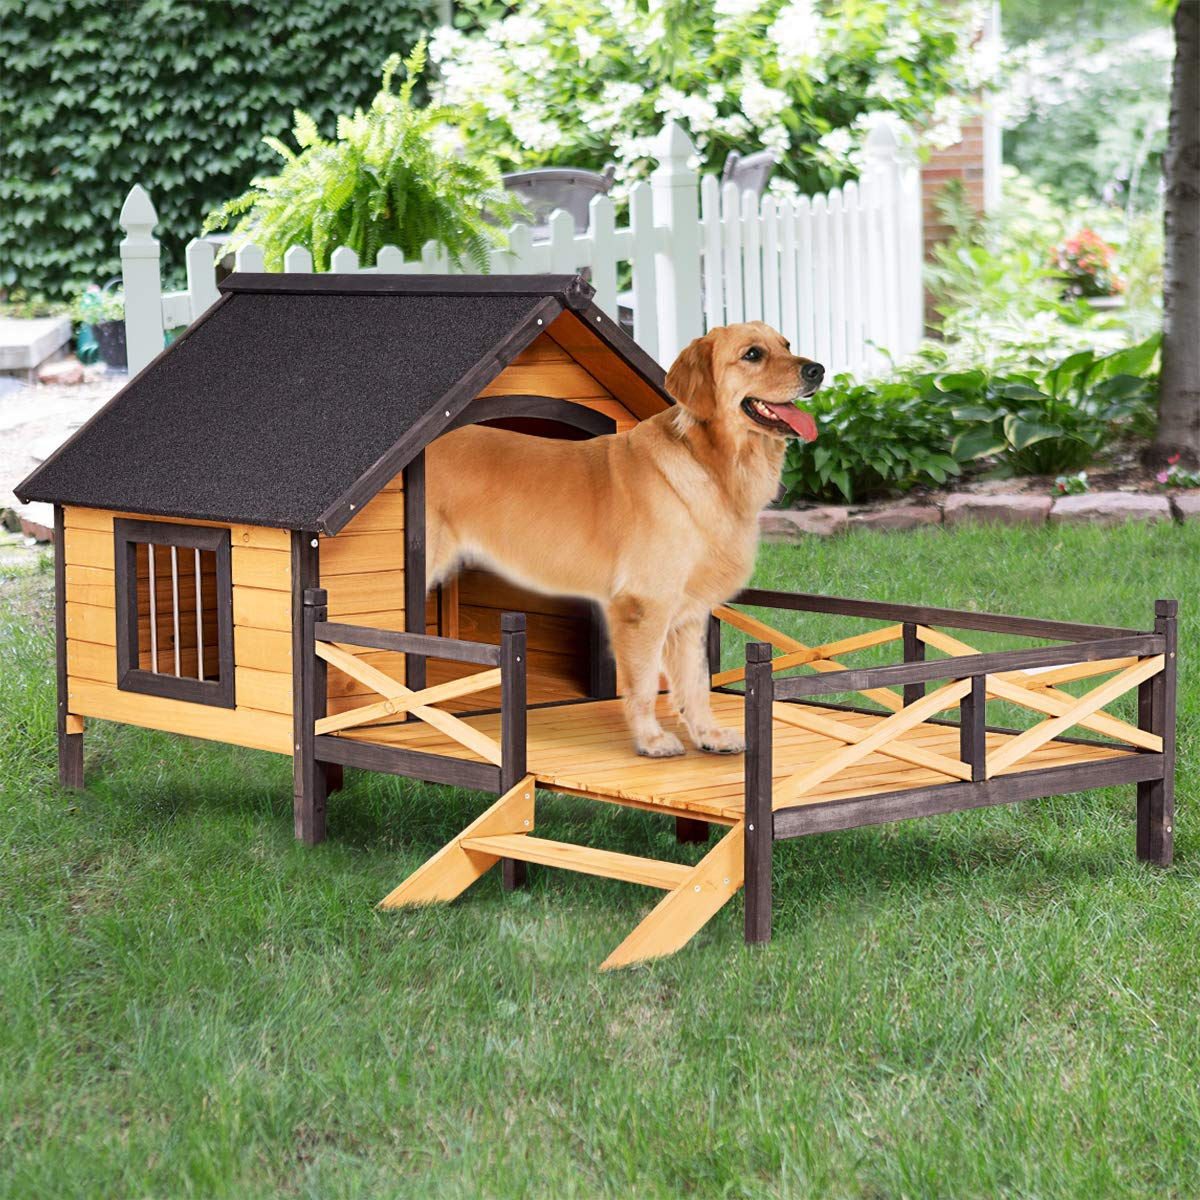 Tangkula Wood Dog House, Cabin Style Large Elevated Weather Waterproof Outdoor Pet Dog House, Lodge with Porch, Spacious Deck for Sunny Nap, Wooden Pet Dog House by Tangkula (Image #3)